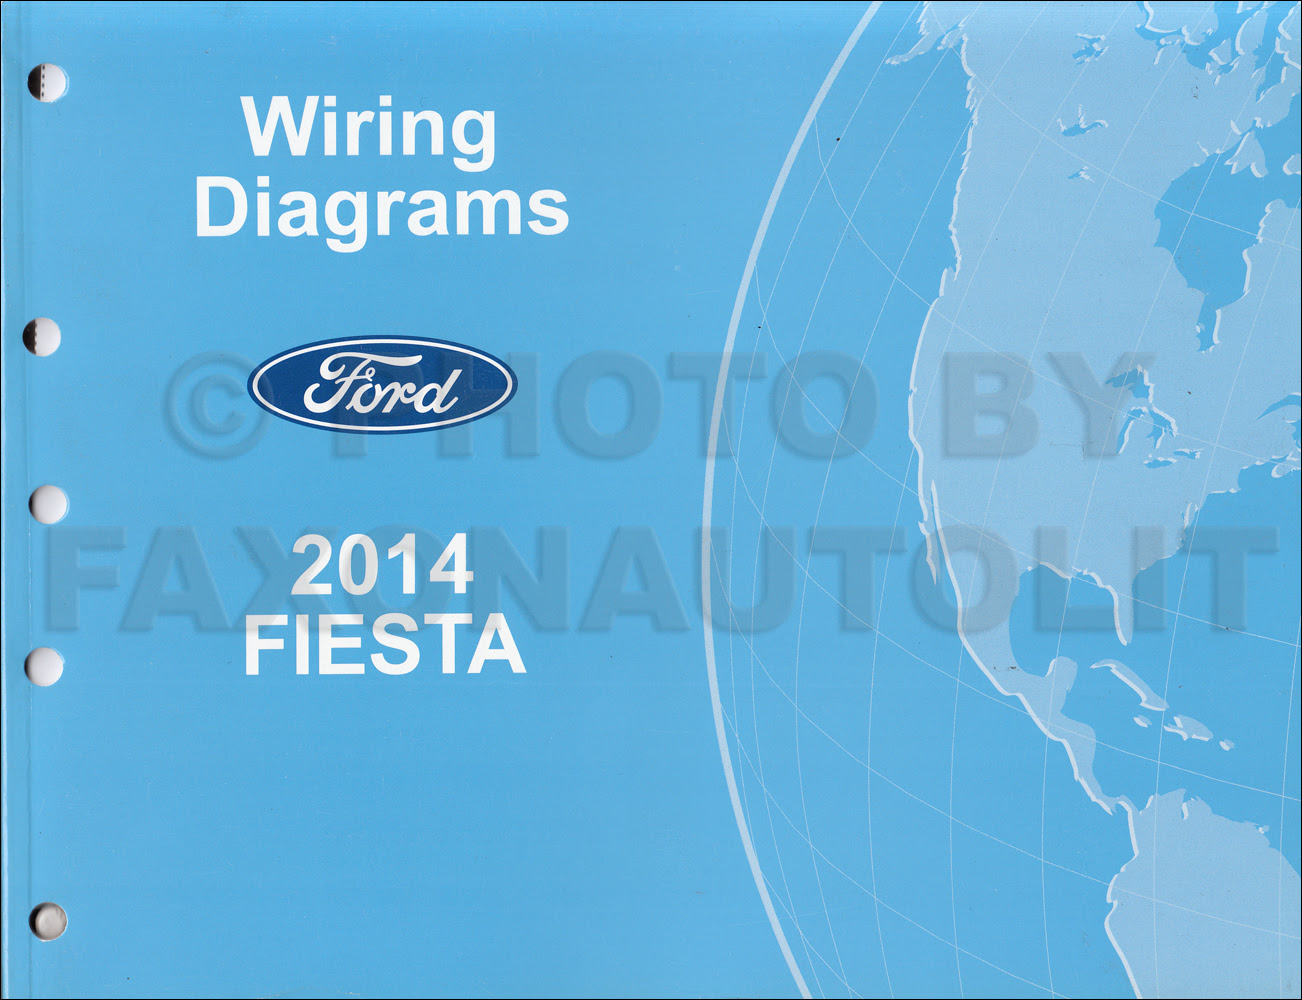 Diagram 2013 Ford Fiesta Wiring Diagram Manual Original Full Version Hd Quality Manual Original Wiringaplug Angelux It